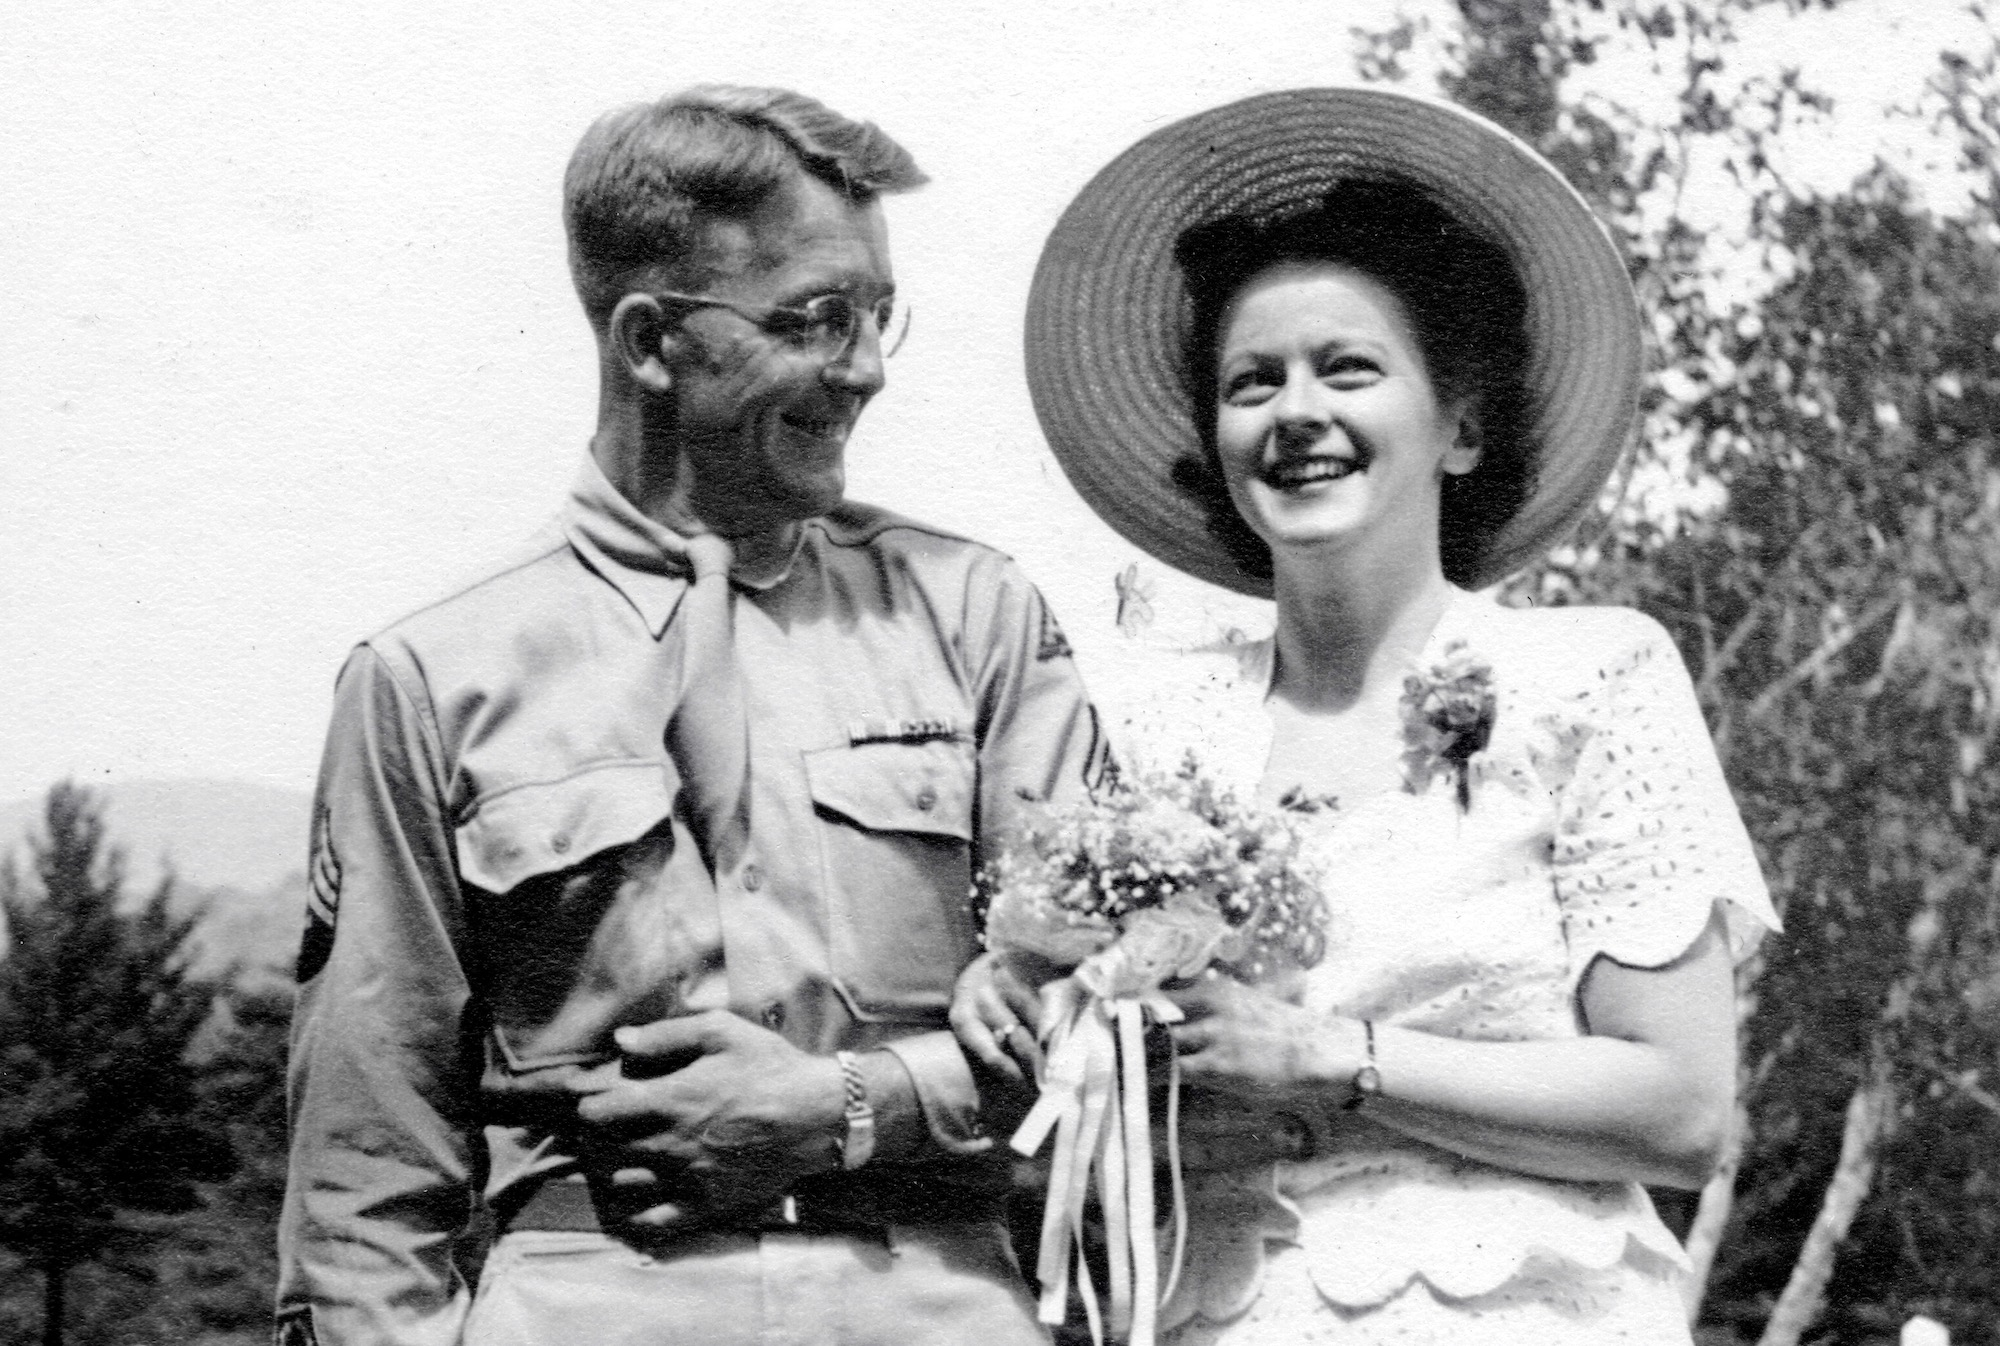 Alger and Jane Mason wedding, 1947